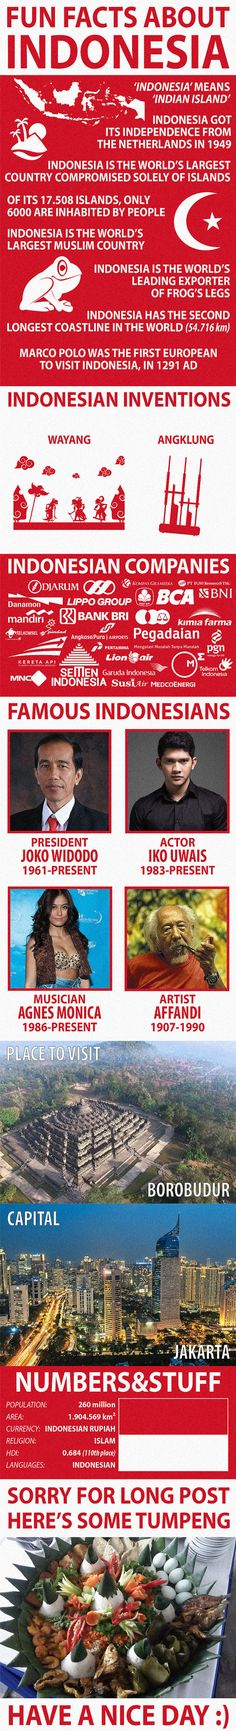 Fun Facts about Indonesia